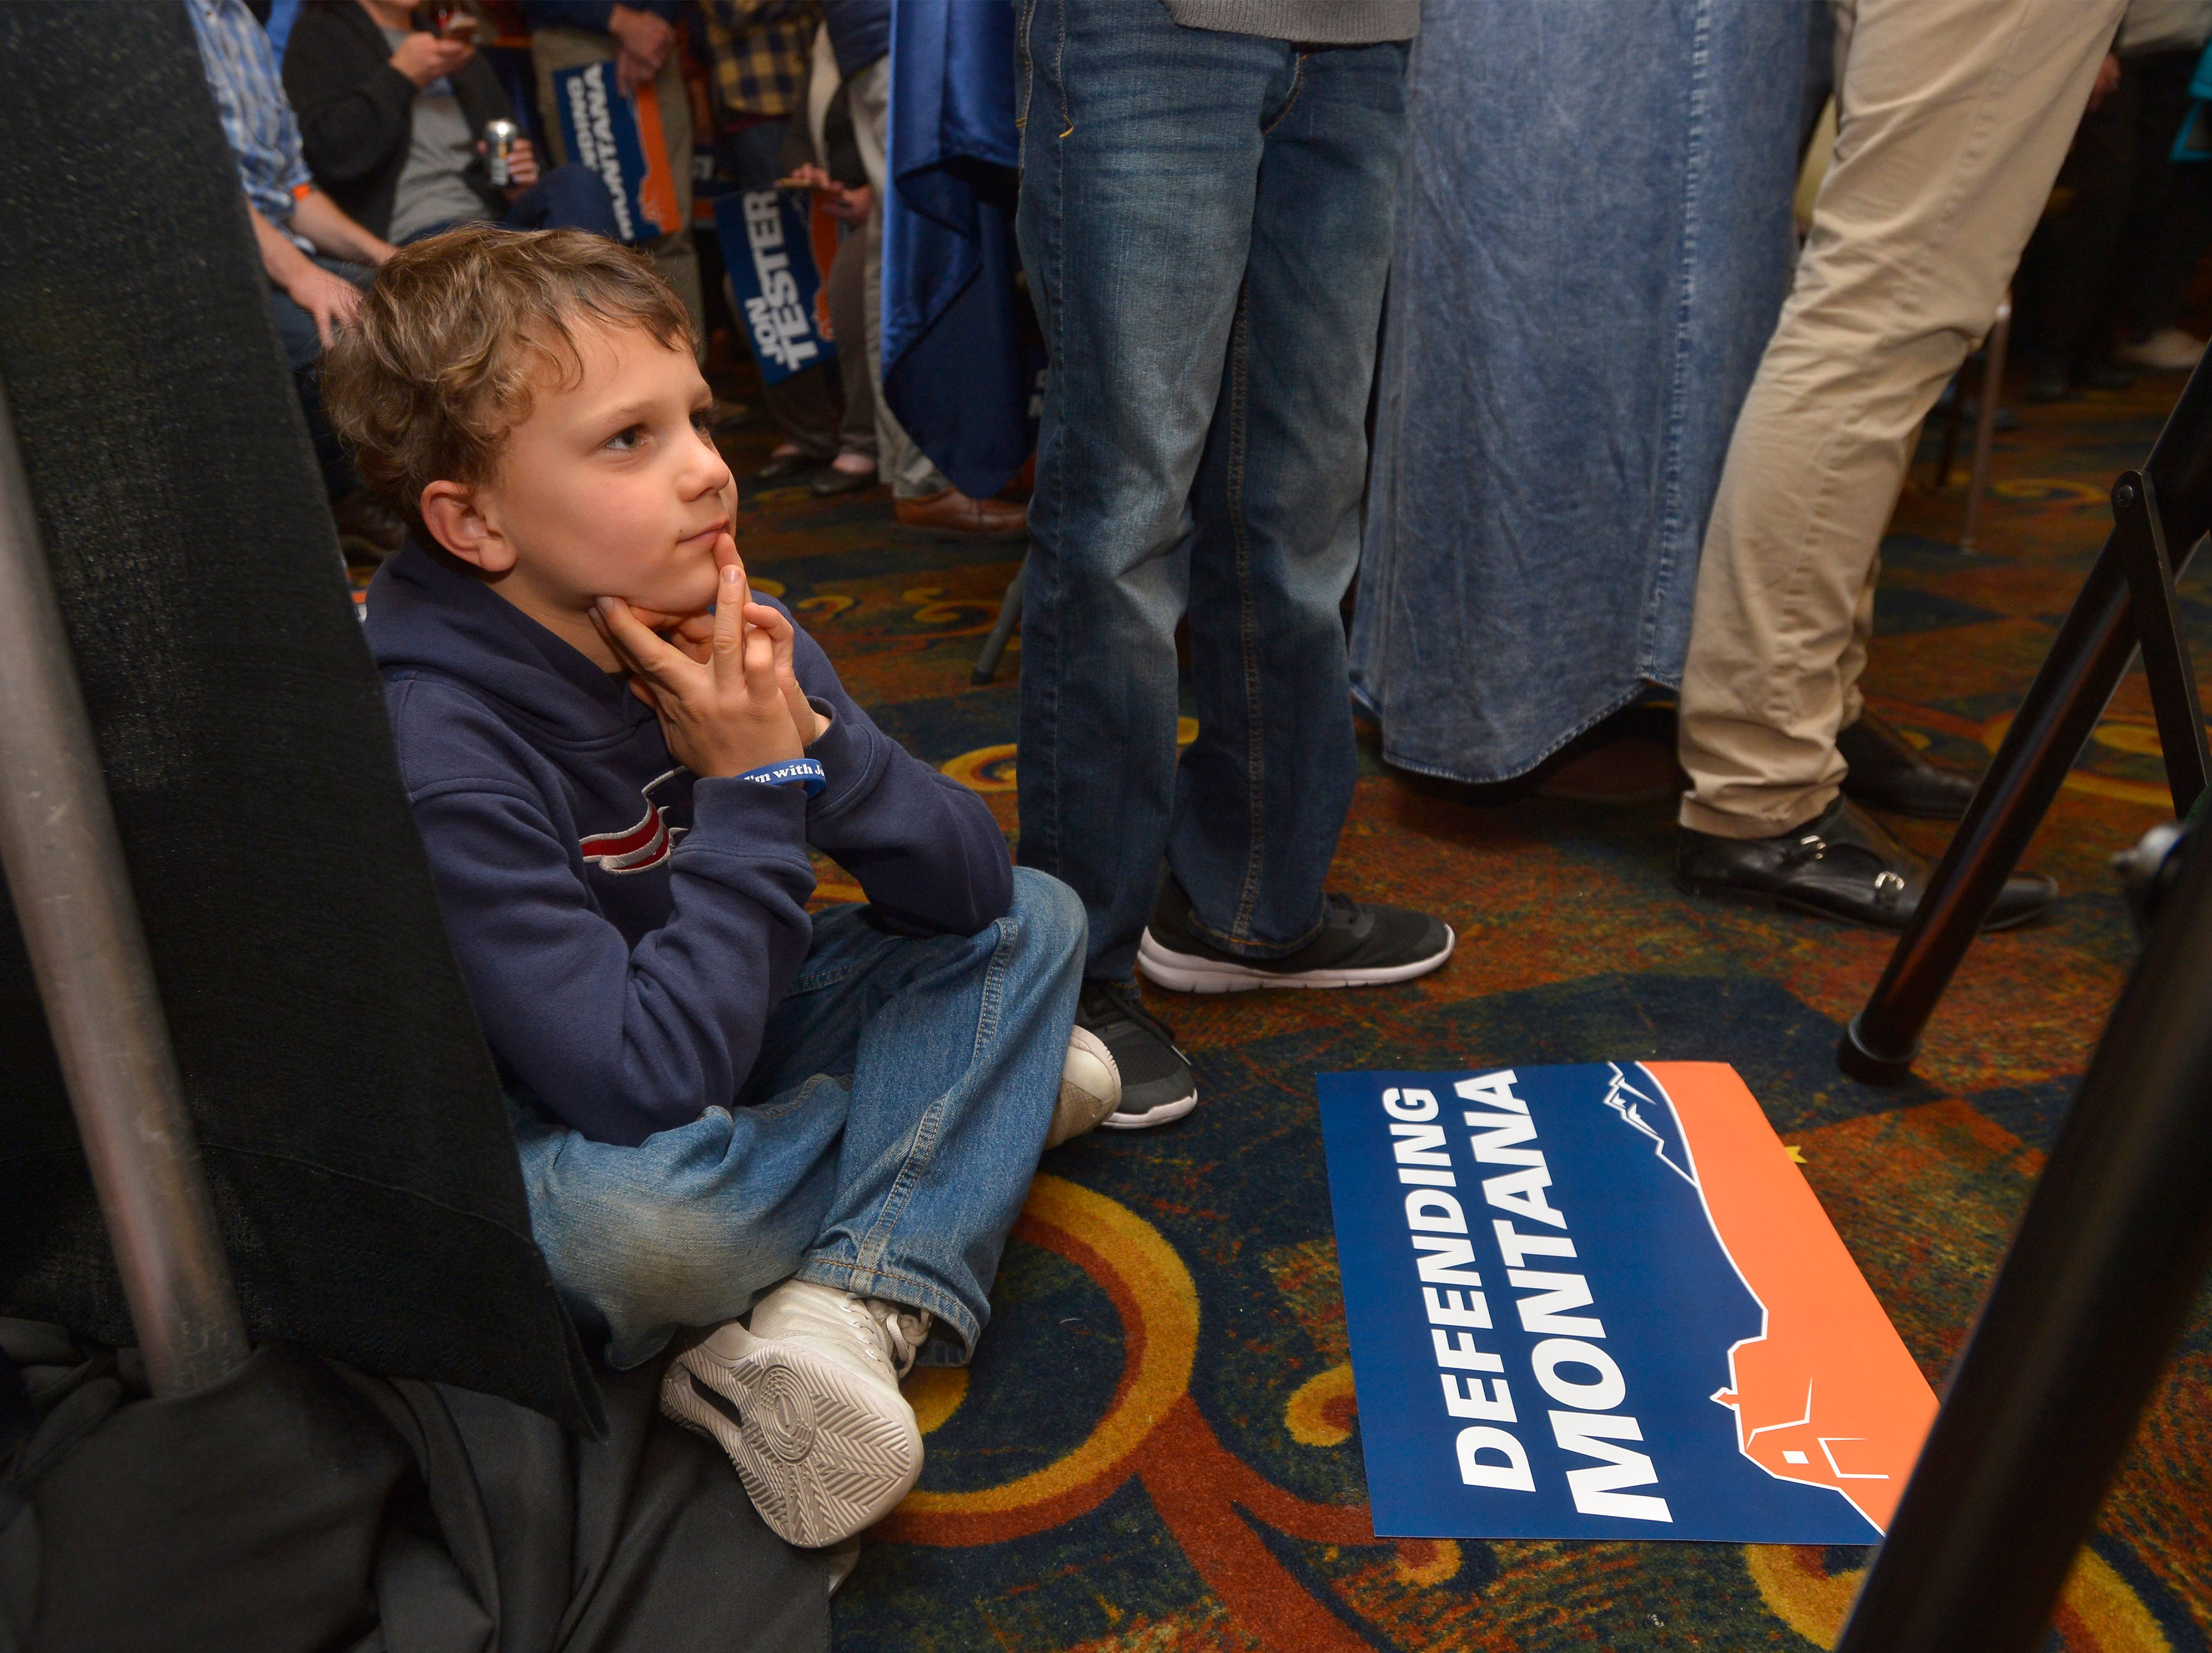 Tucker Schultz looks on as his grandfather, Senator Jon Tester, addresses his supporters late Tuesday evening during his election night party on at the Holiday Inn in Great Falls.